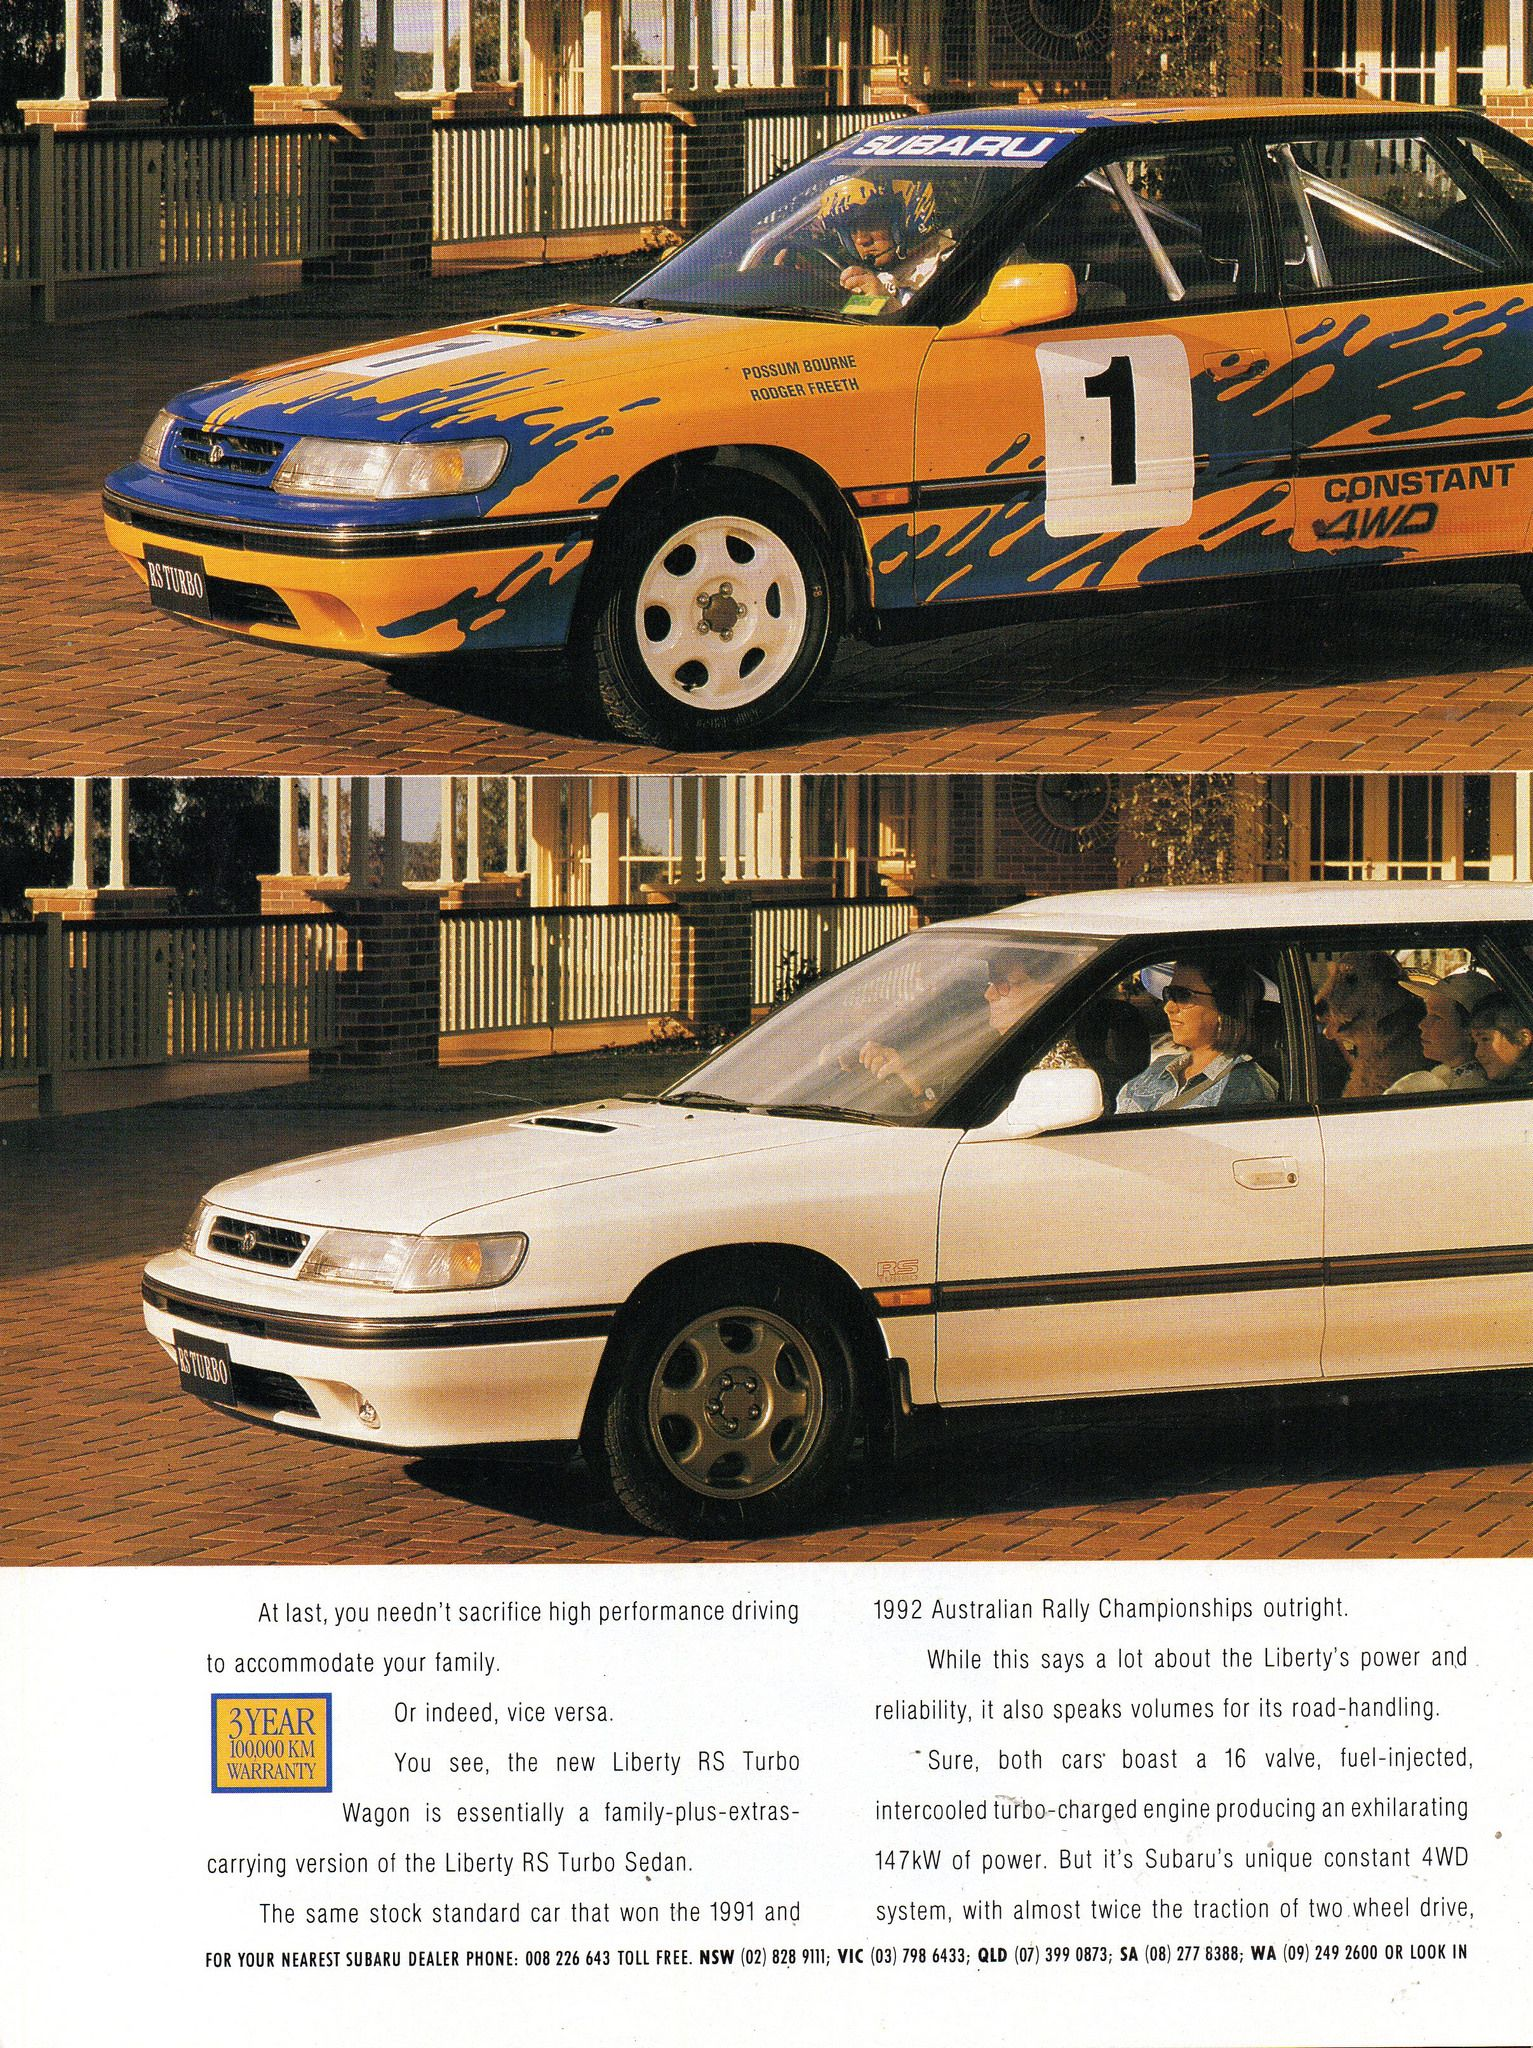 1993 Subaru Liberty Rs Turbo Sedan Wagon Page 1 Aussie Original Magazine Advertisement Subaru Subaru Legacy Subaru Wagon